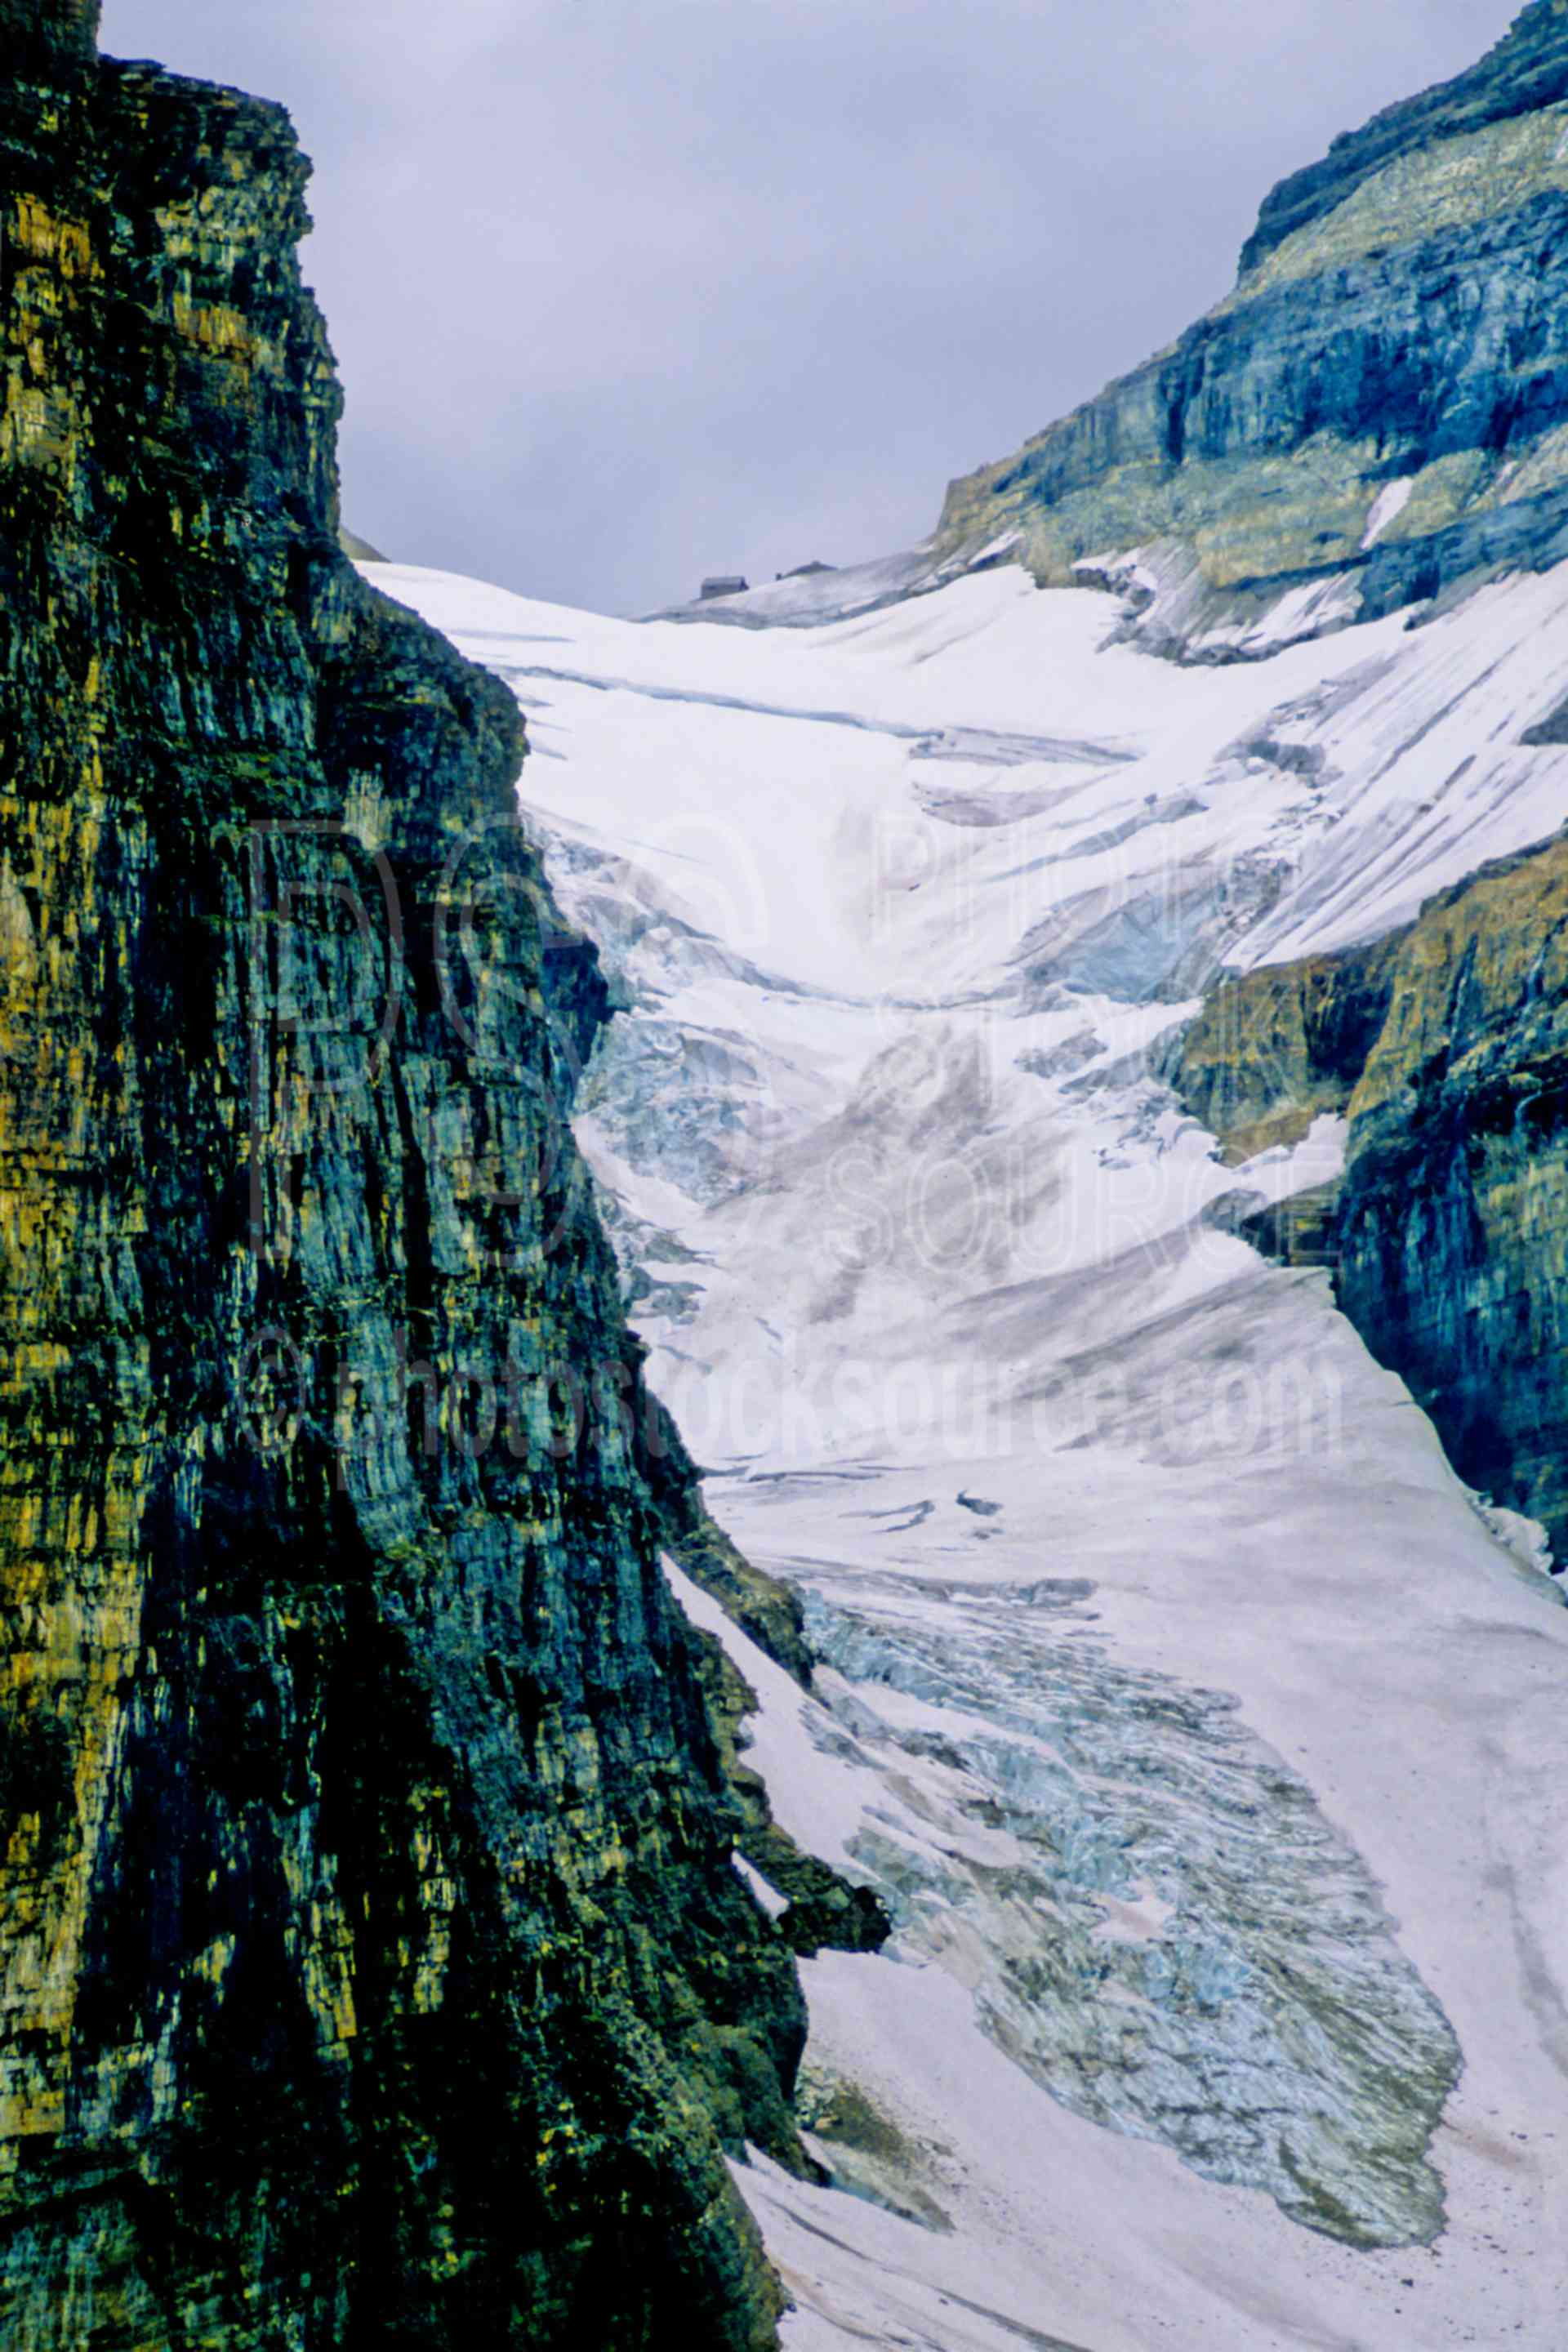 Death Trap,glacier,nature,mountains